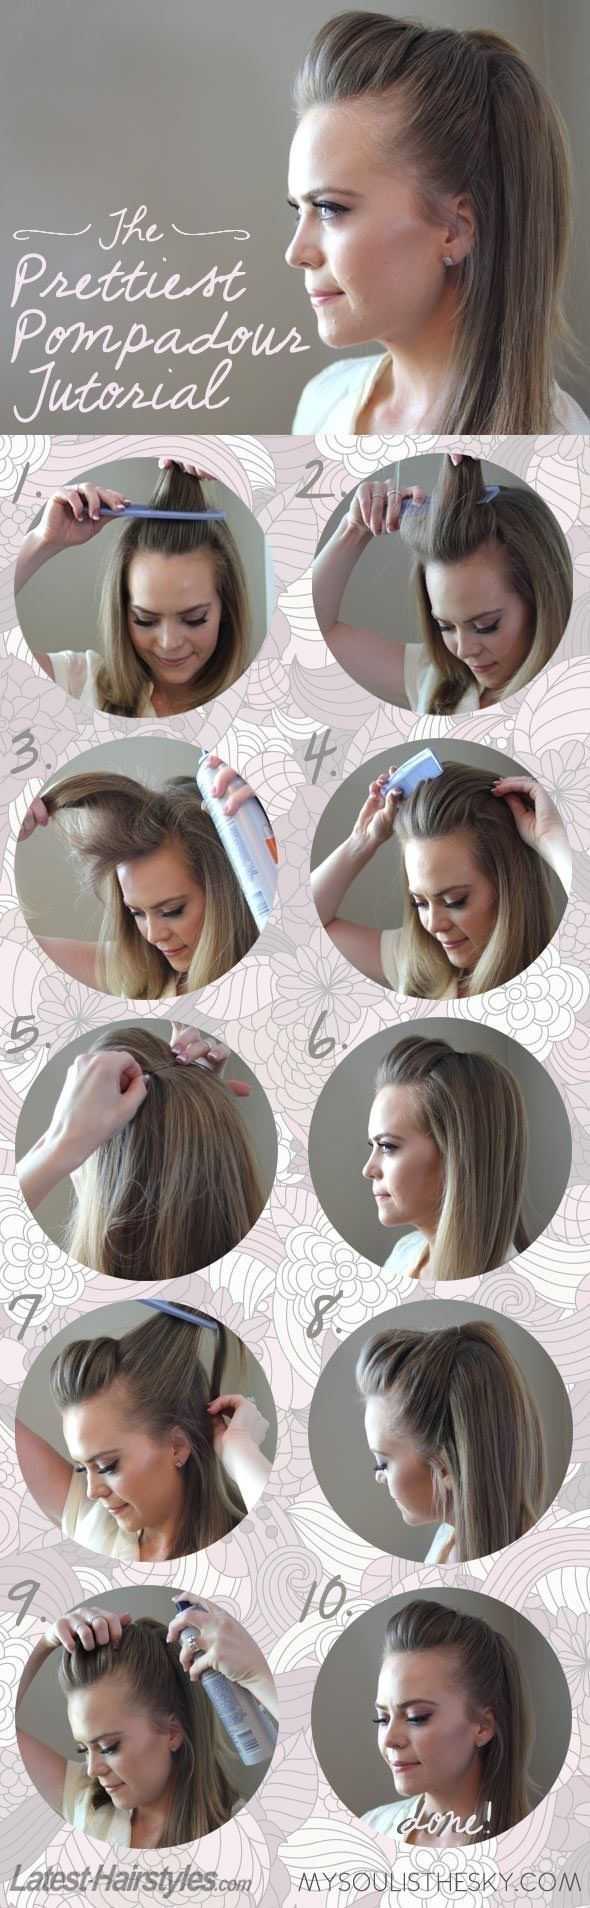 23 Five-Minute Hairstyles For Busy Mornings by aracelipama